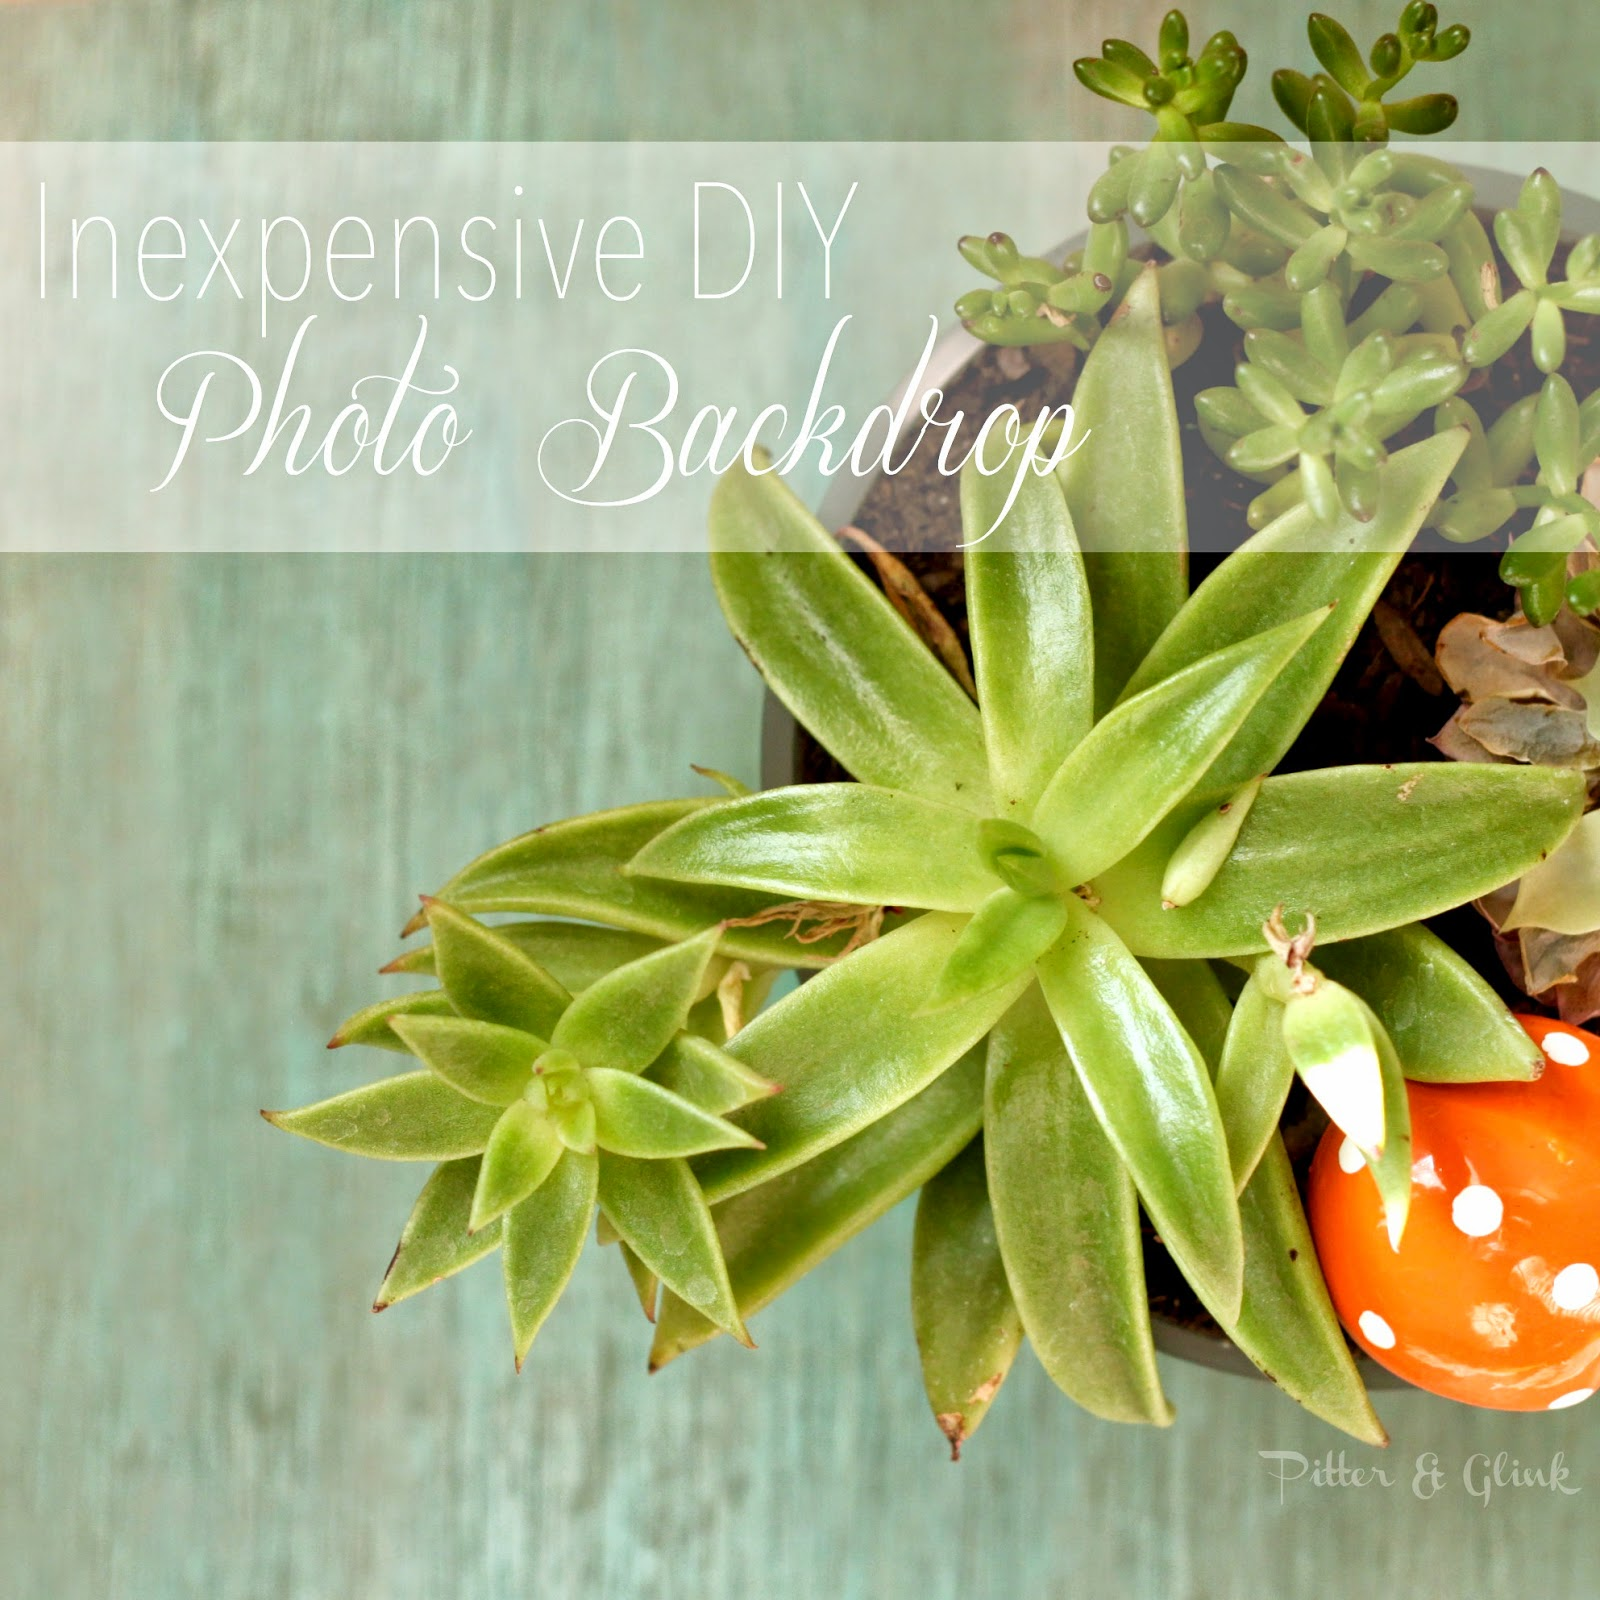 Inexpensive DIY Reversible Photo Backdrop #photography #photobackdrop www.pitterandglink.com